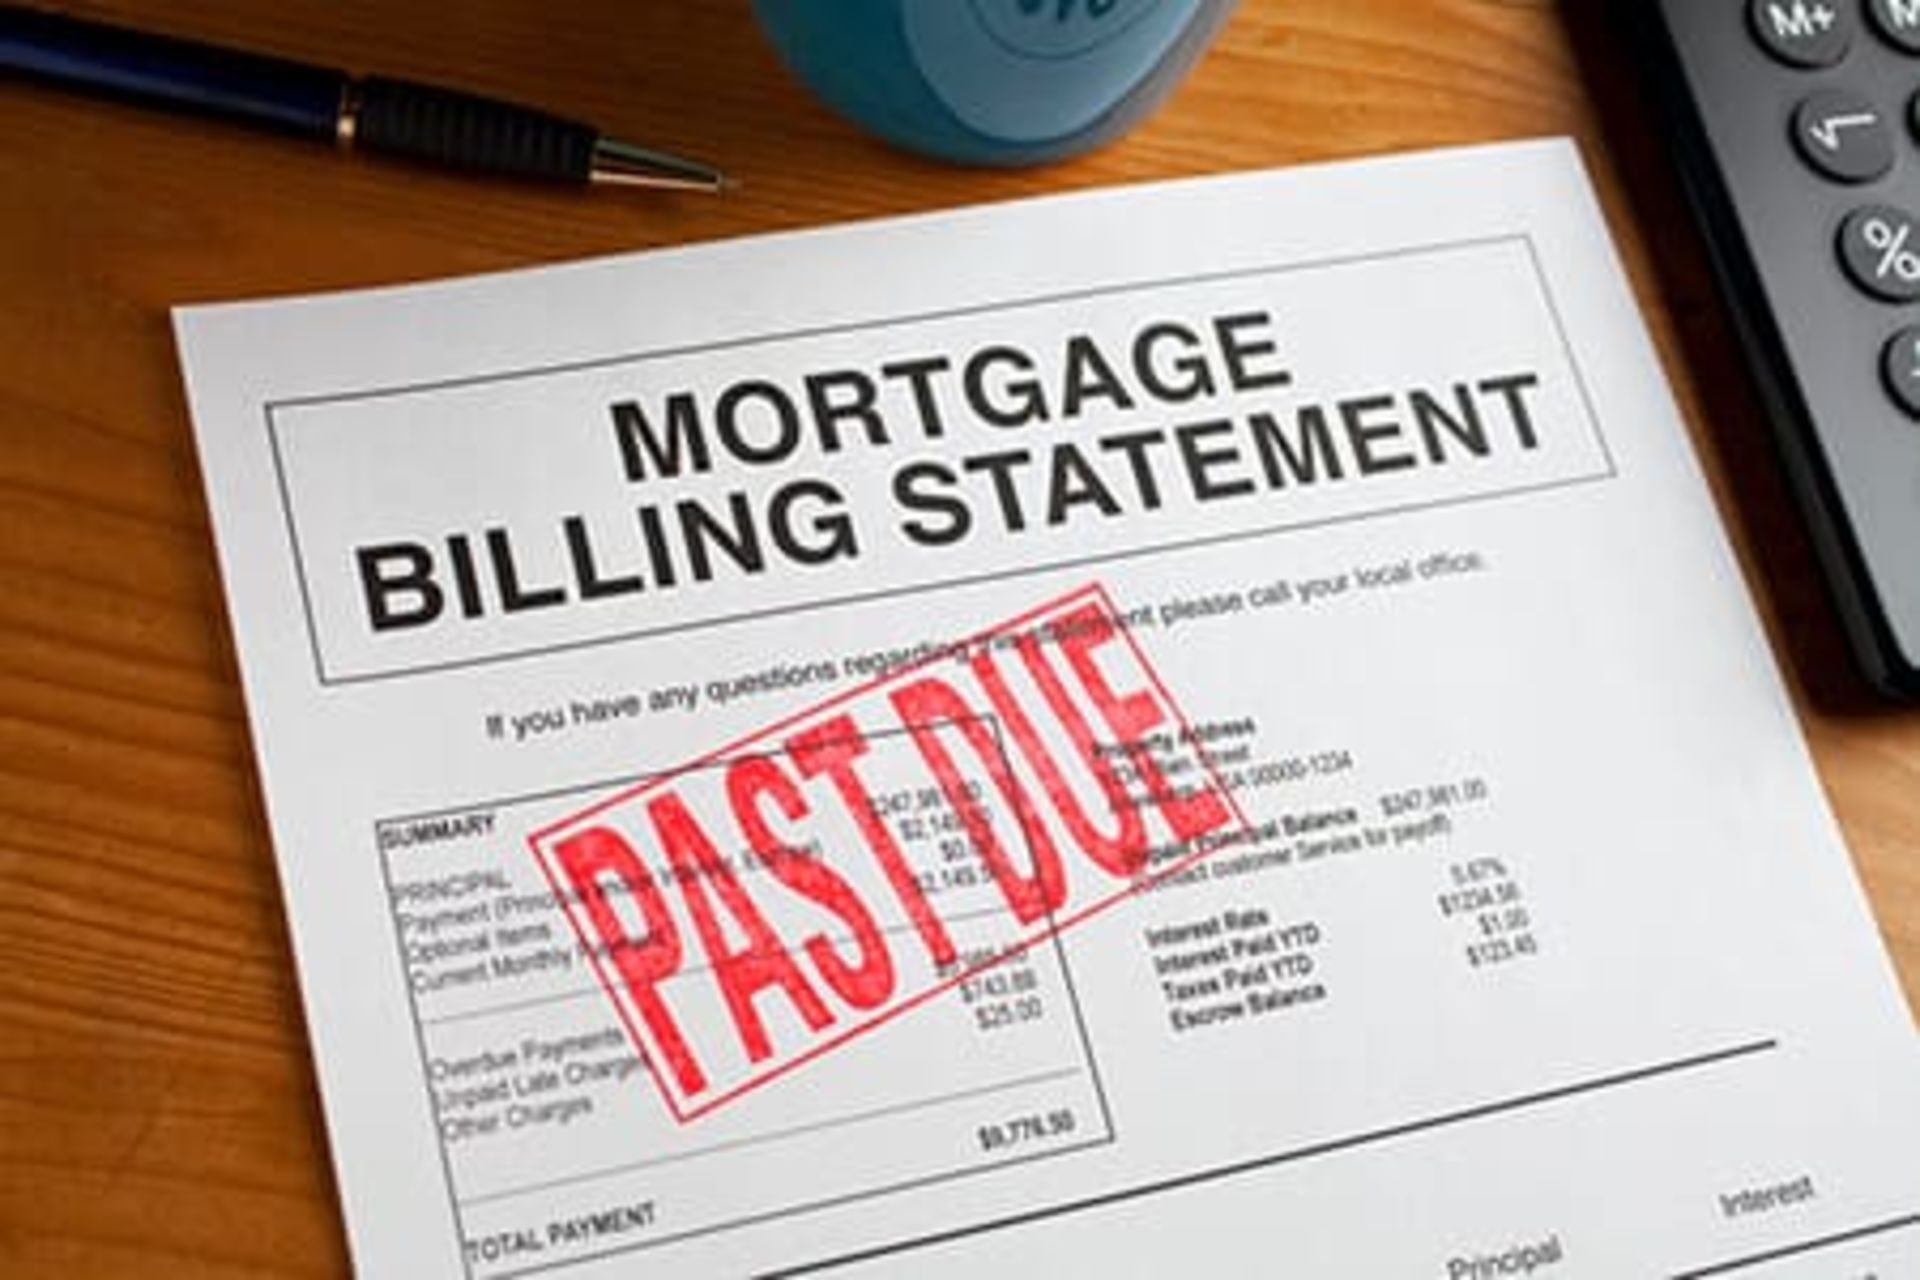 Mortgage delinquency rates hit 20-year low